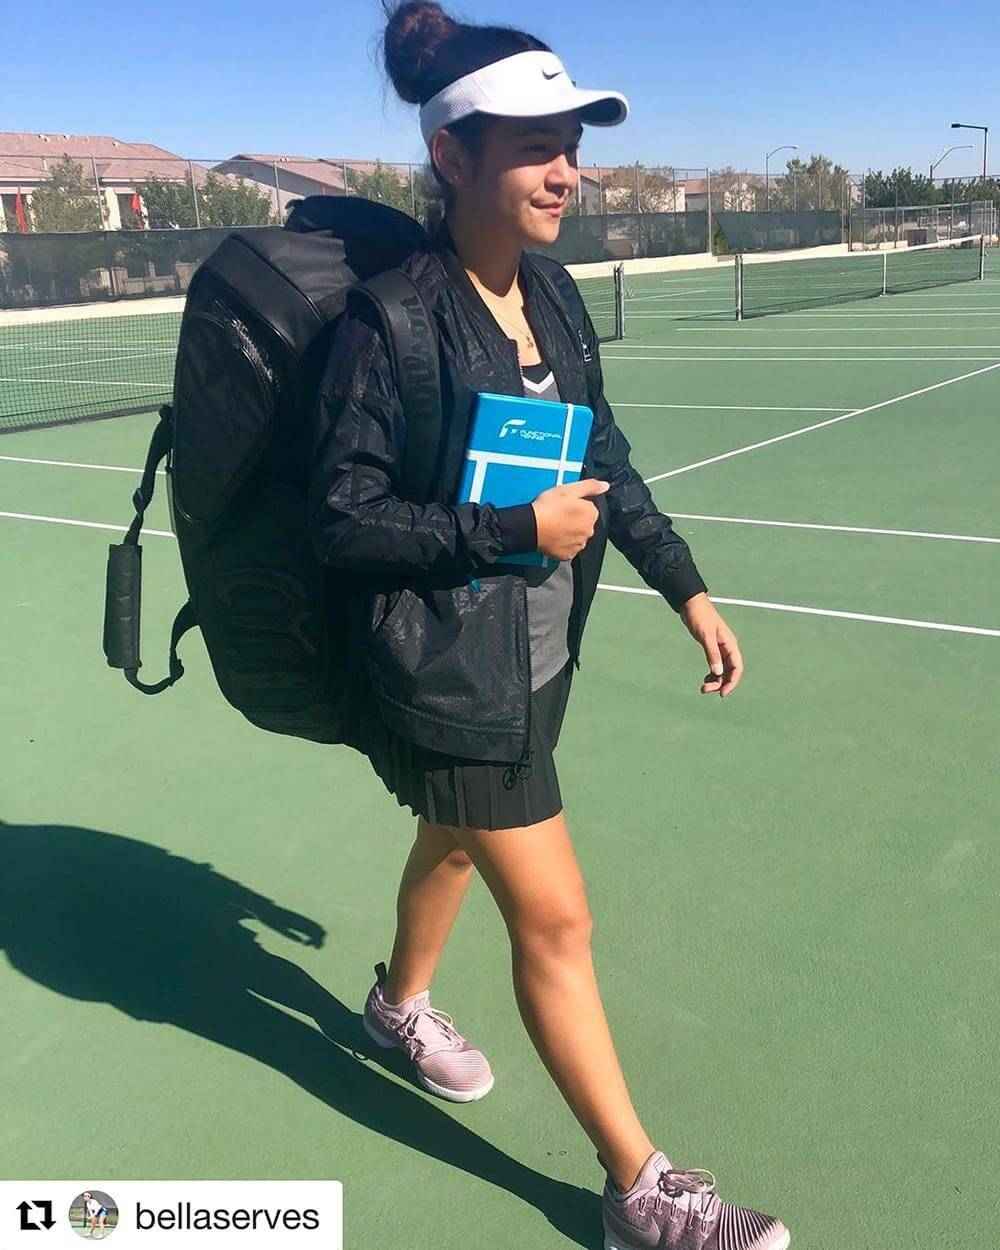 BellaServes with her Functional Tennis Journal